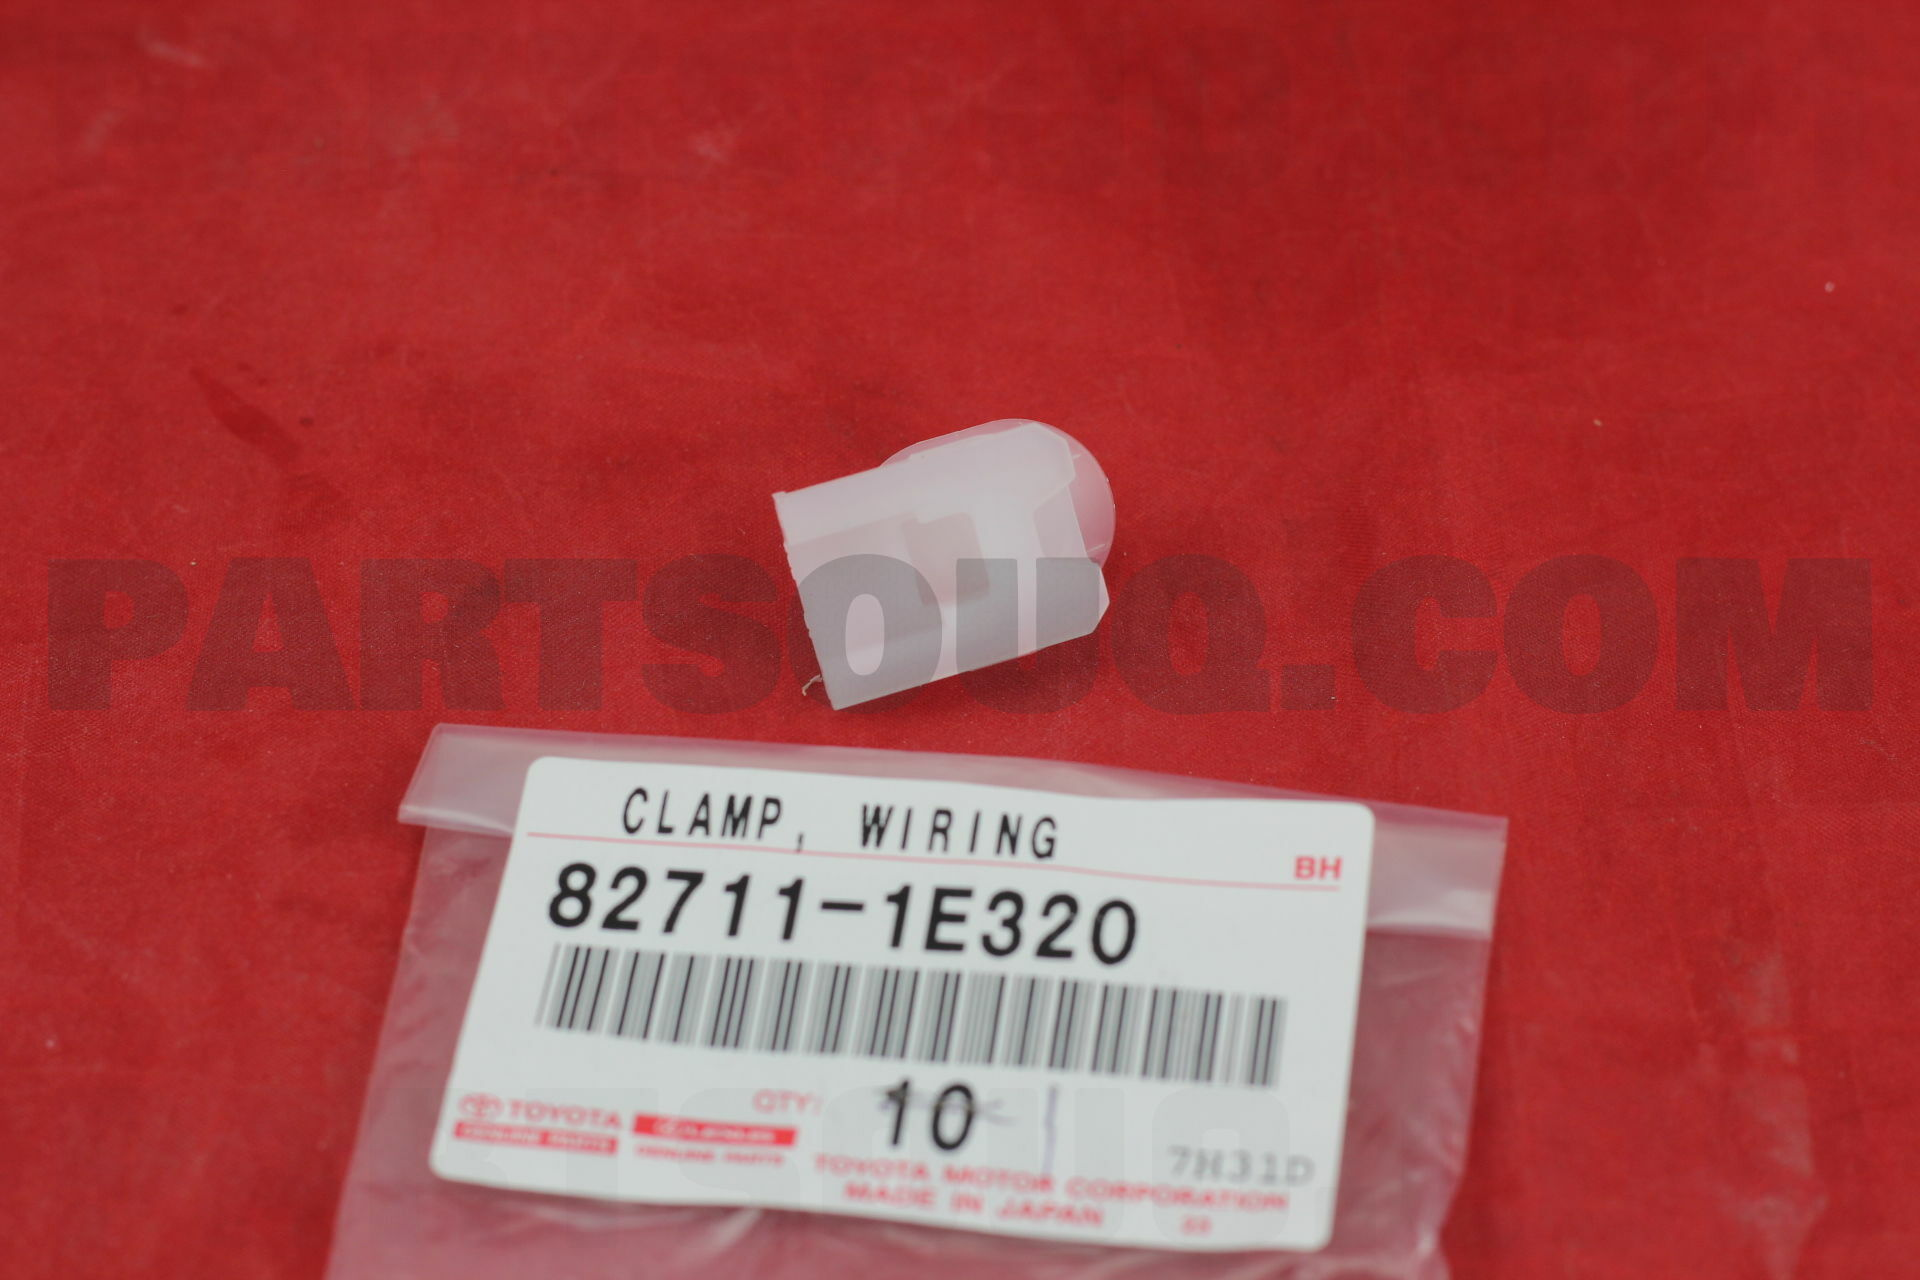 827111E320 1 827111e320 toyota clamp, wiring harness price 0 53$, weight 0 001